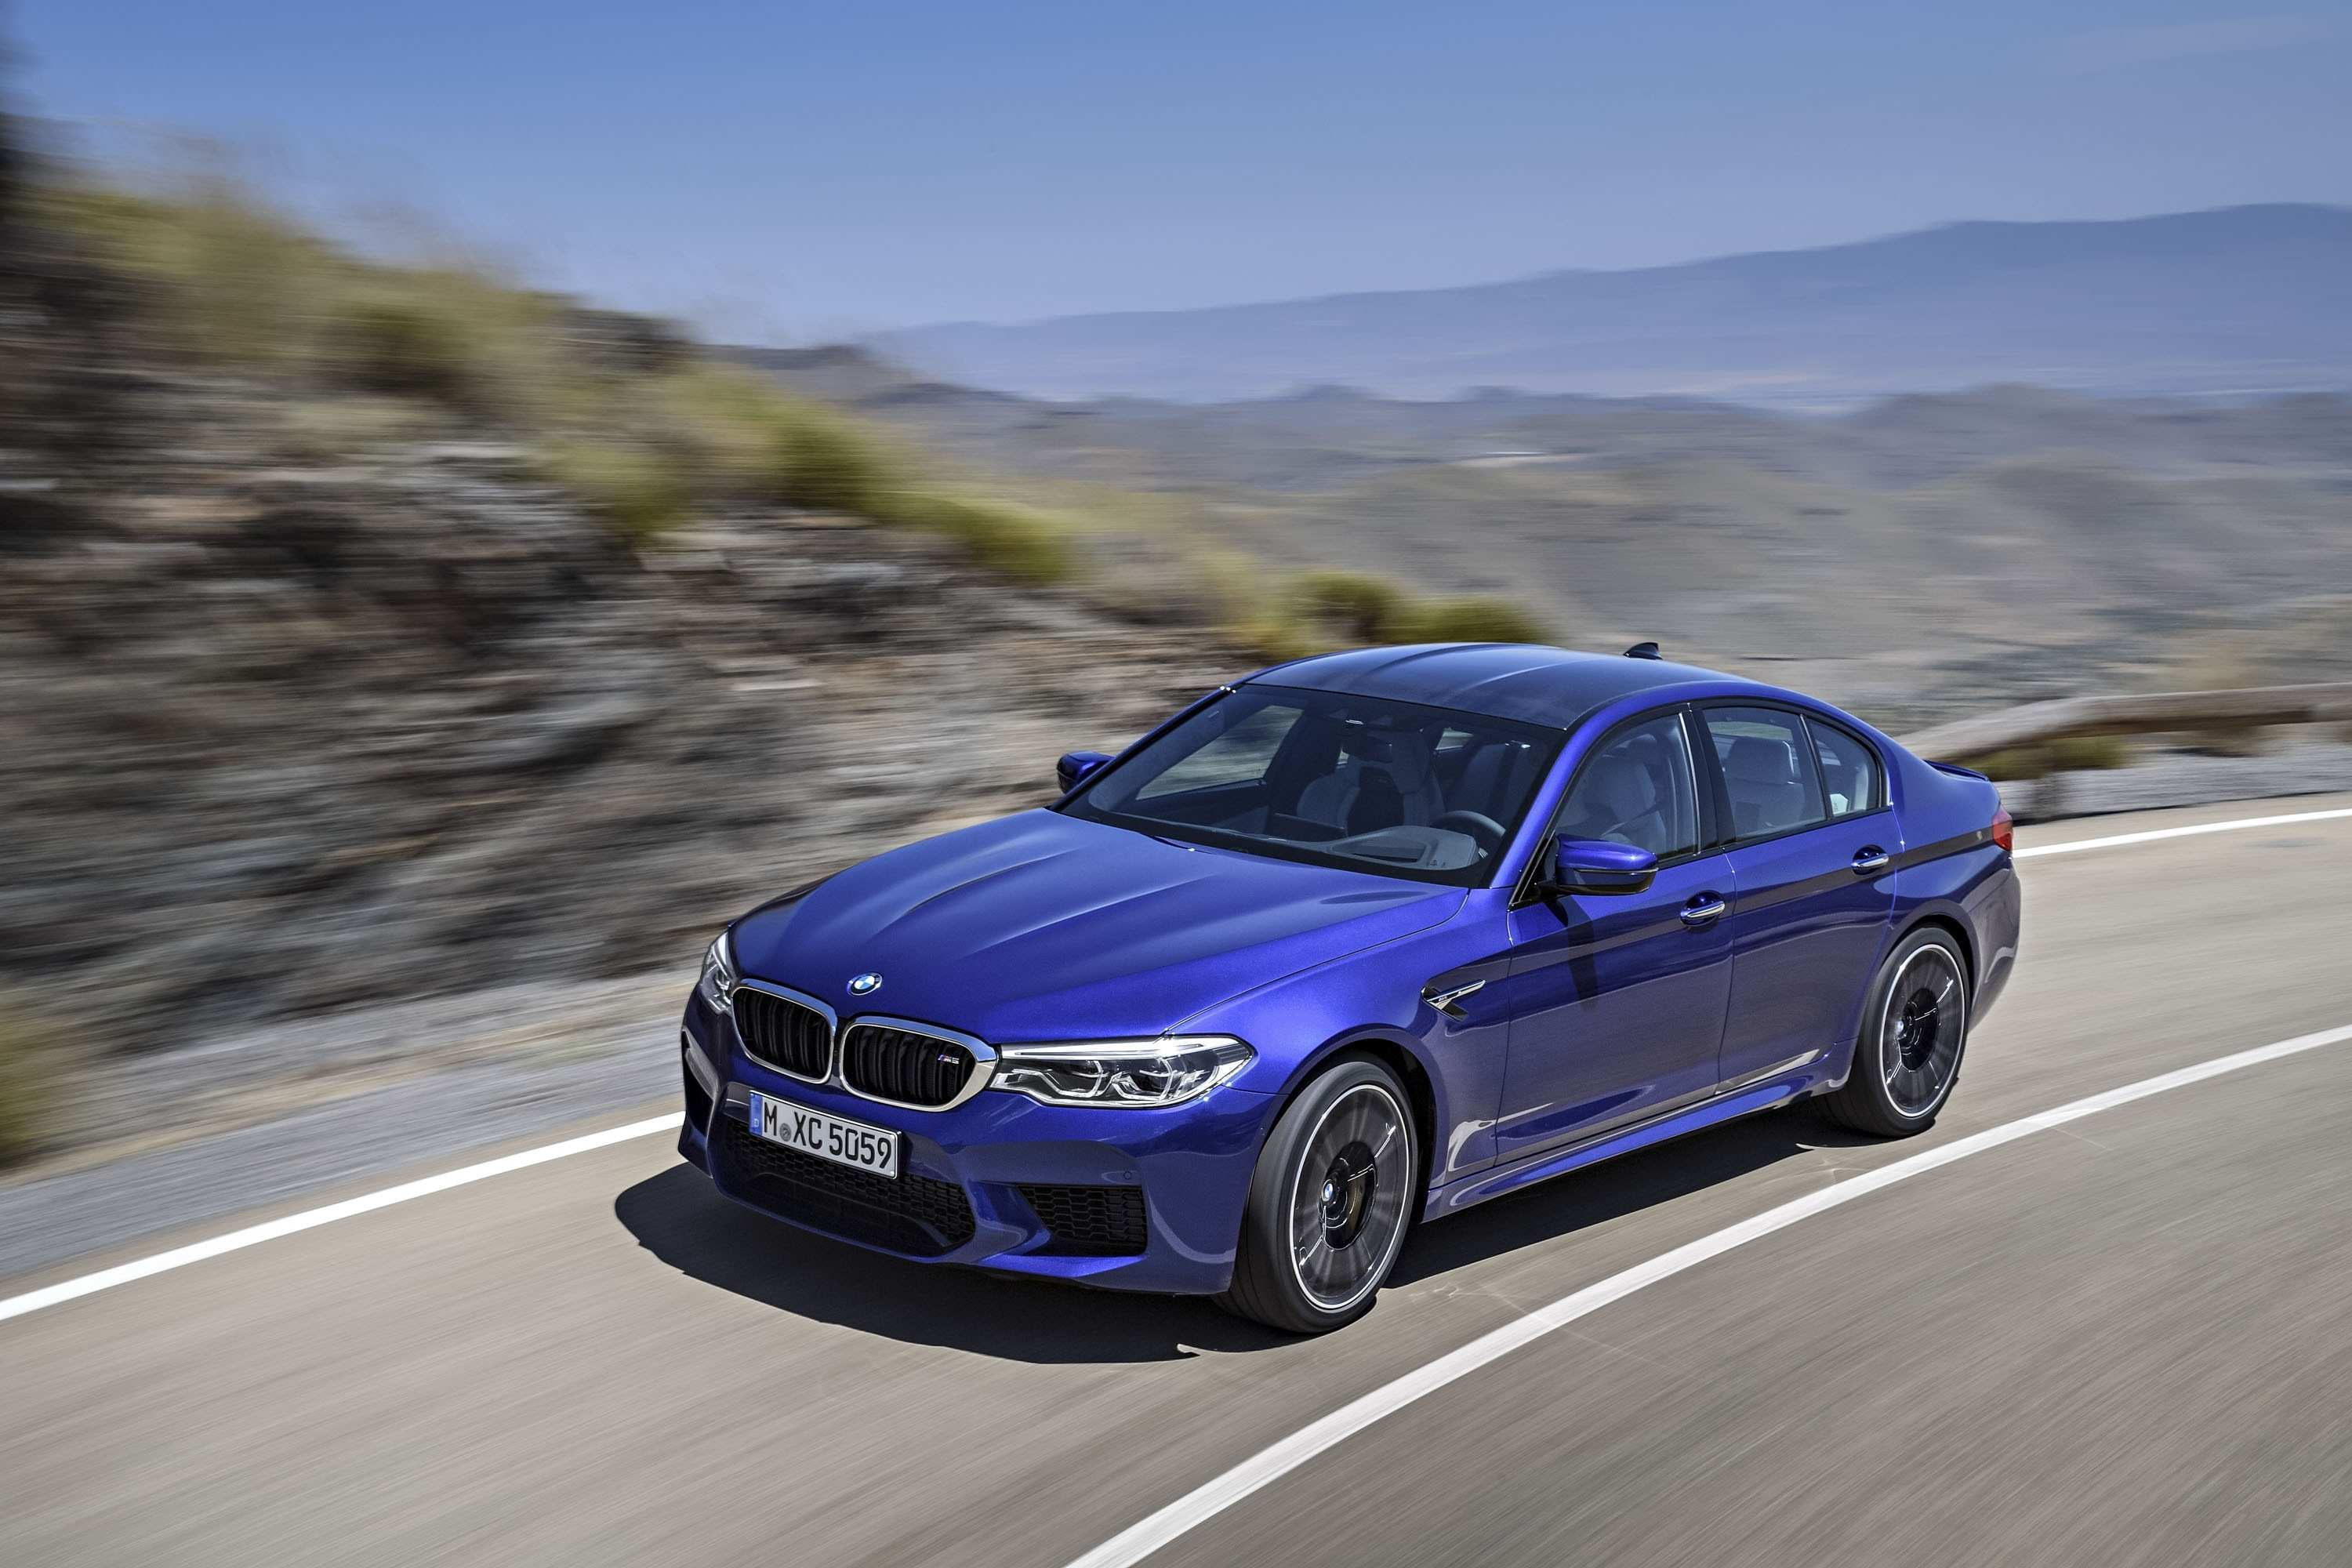 69 New 2020 BMW M5 Xdrive Awd Wallpaper